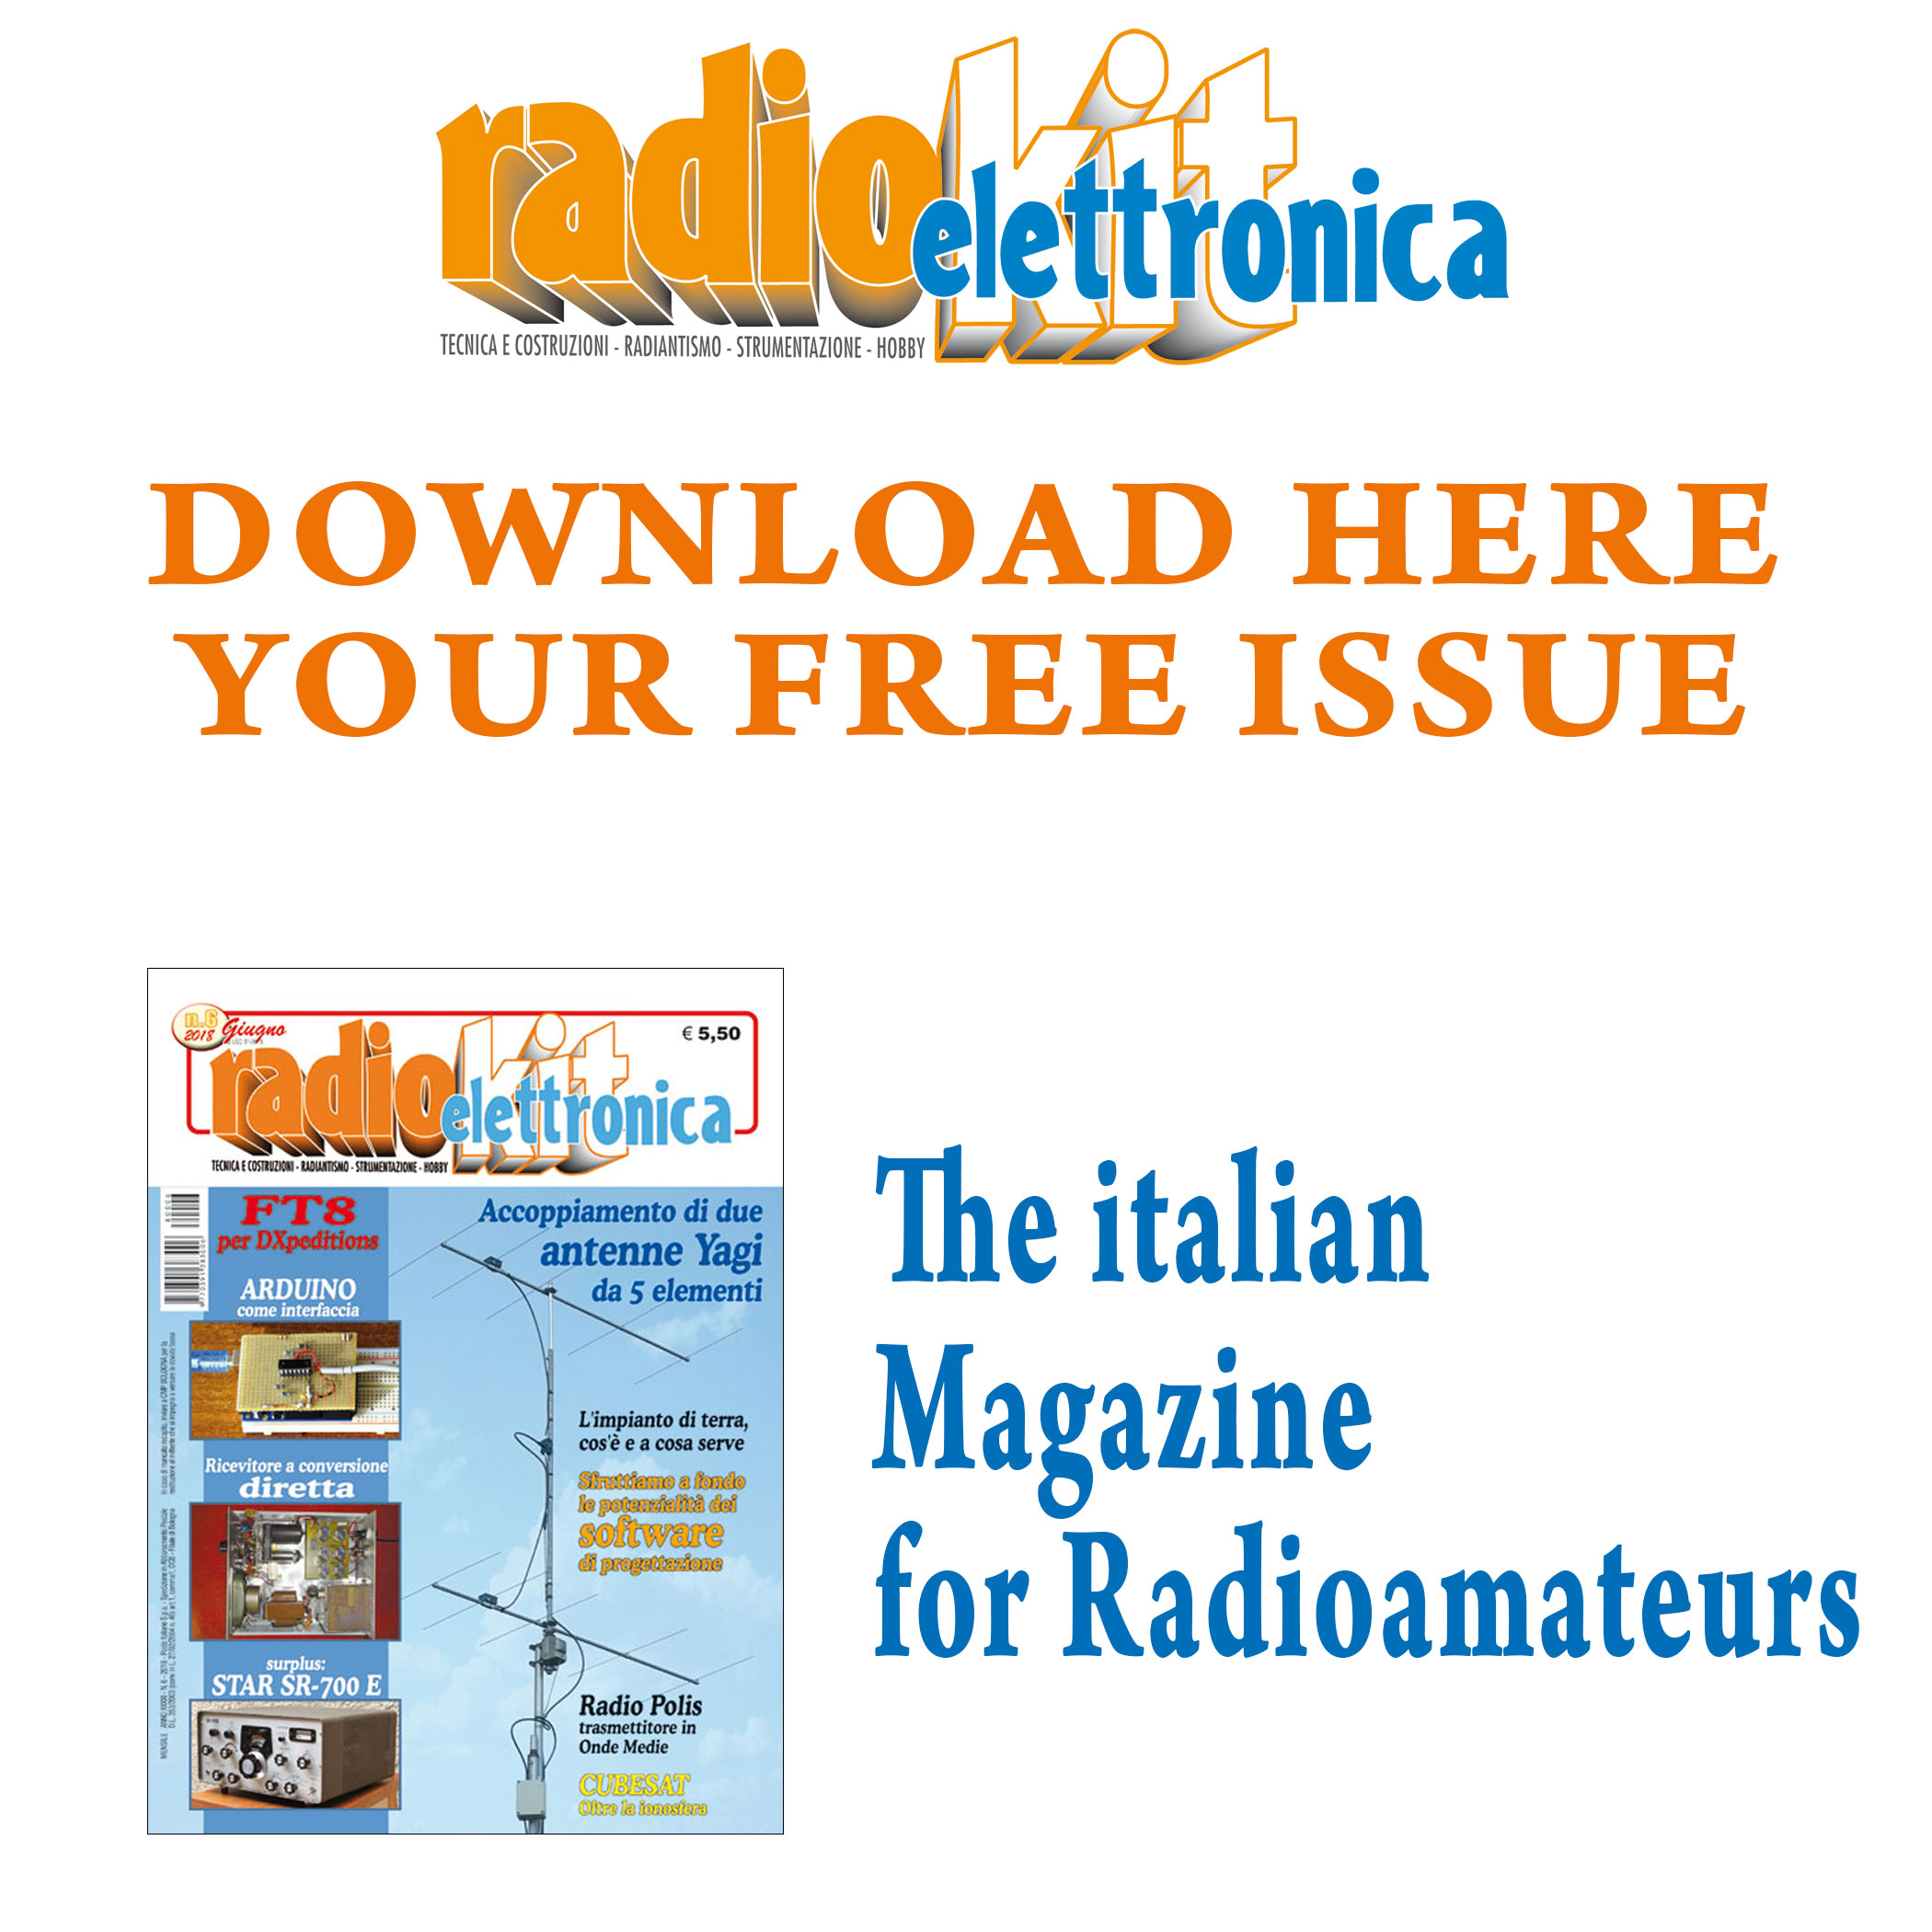 Download Here your free issue of Radiokit Elettronica